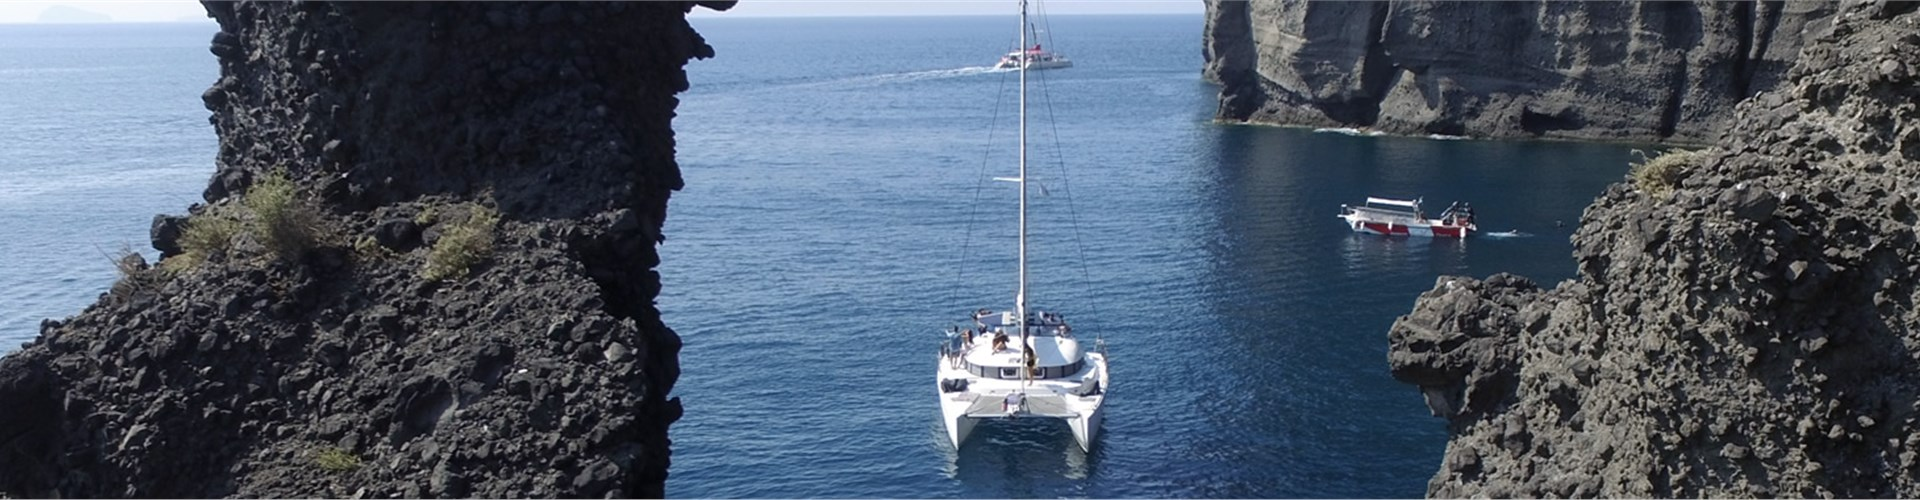 Photo of Full-Day Private Catamaran Cruise Tour with meal and drinks